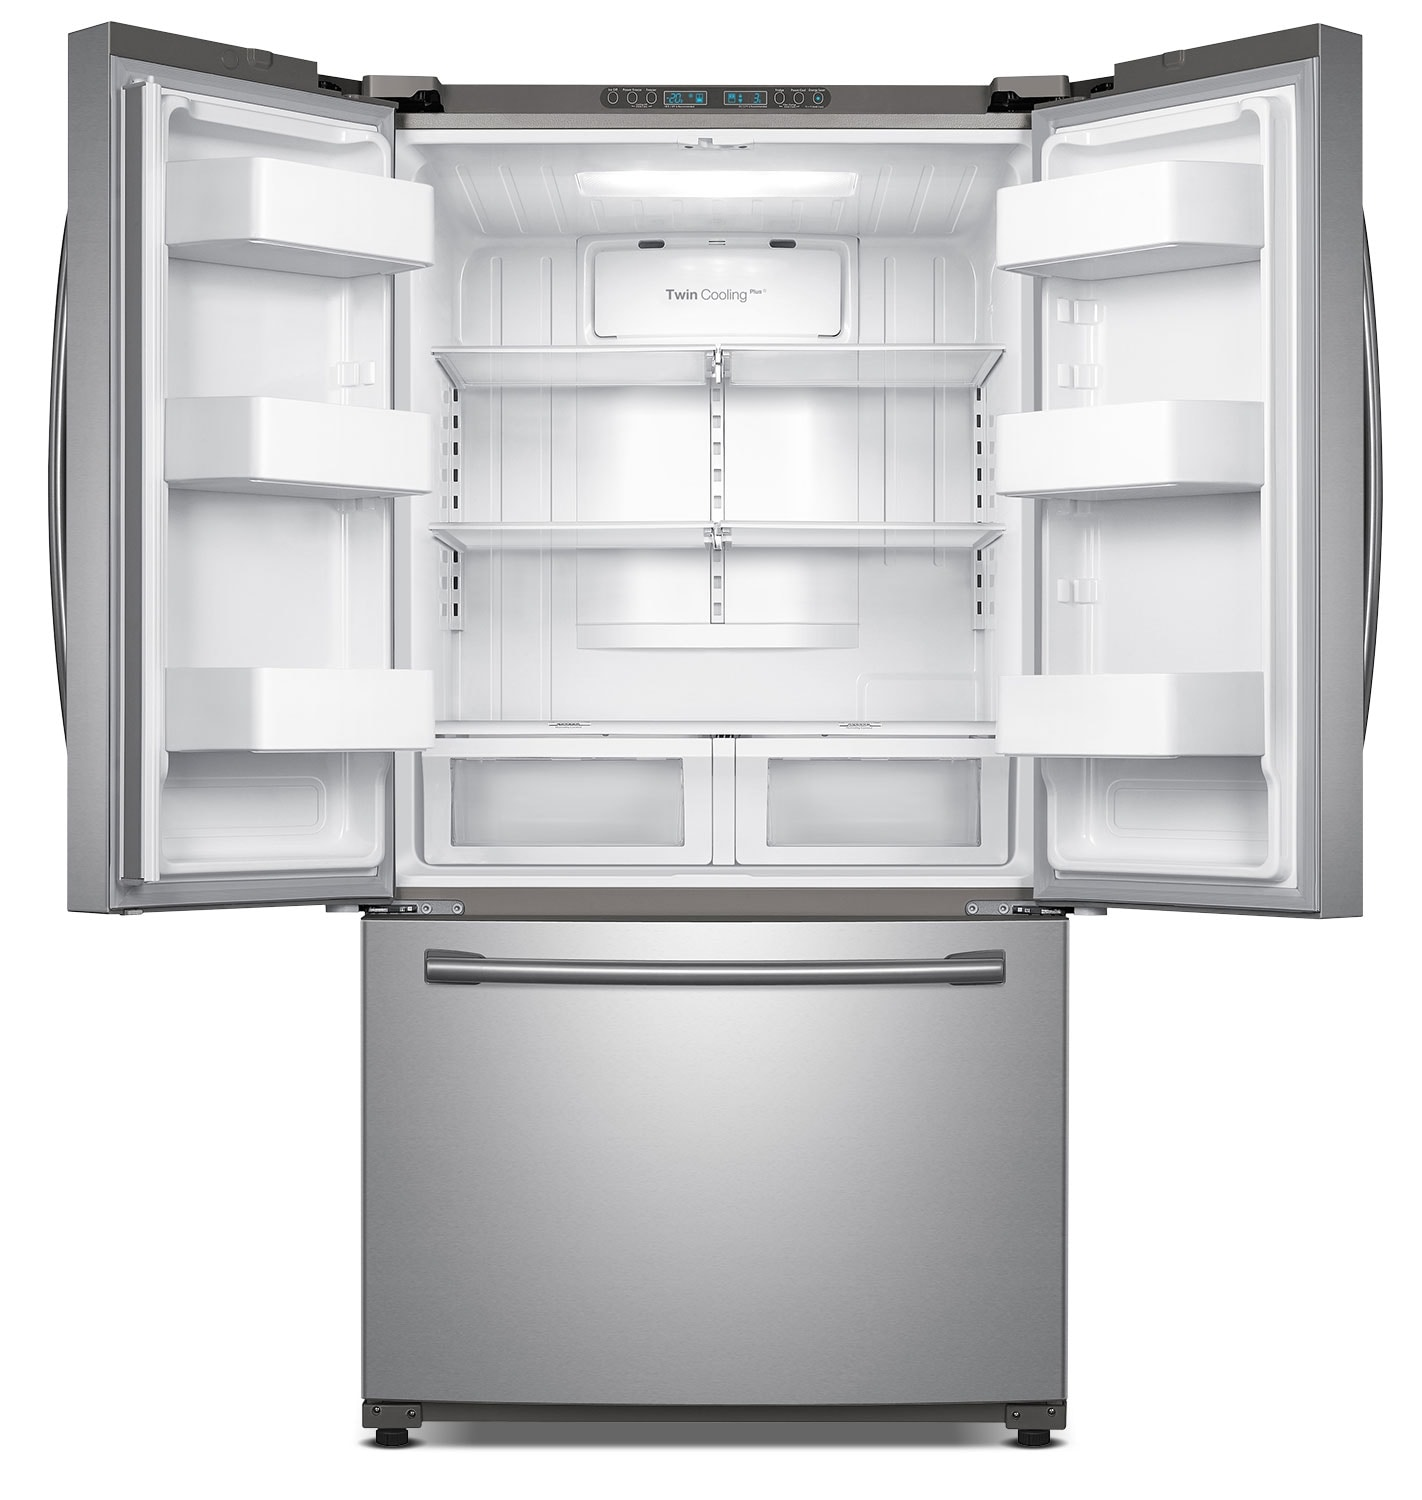 Samsung Stainless Steel French Door Refrigerator 25 5 Cu